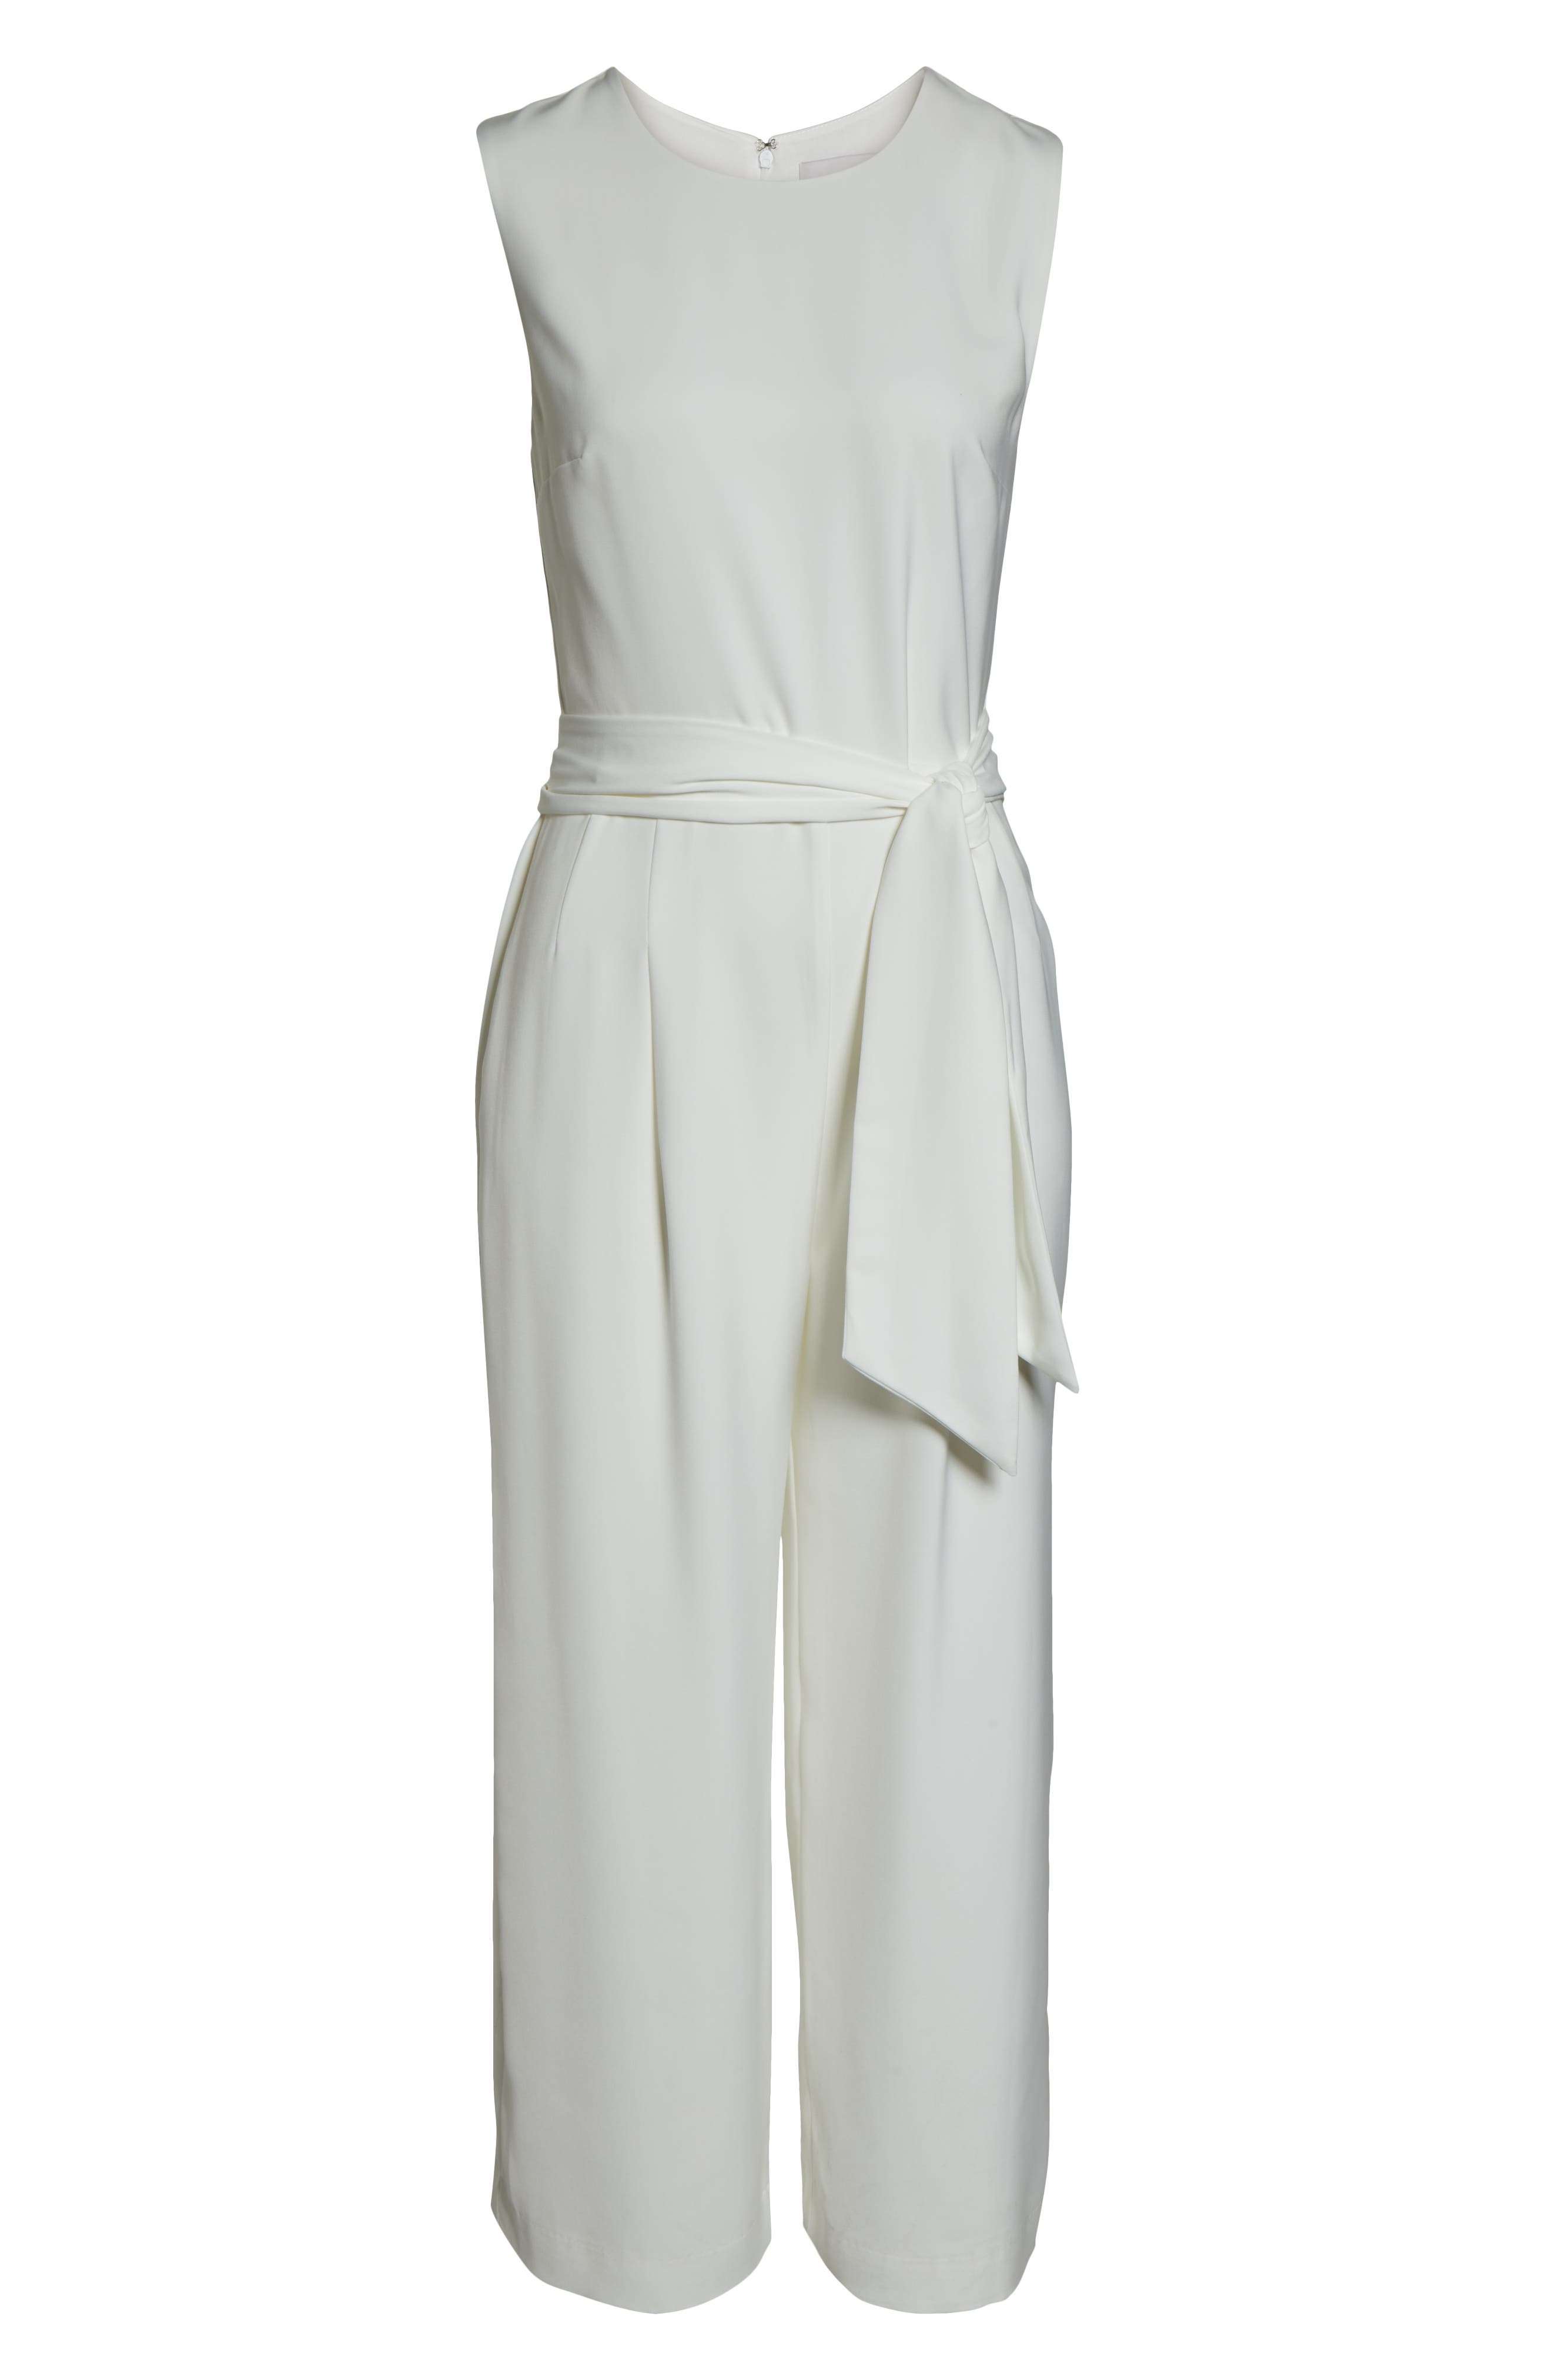 CHARLES HENRY, Sleeveless Culotte Jumpsuit, Alternate thumbnail 7, color, IVORY